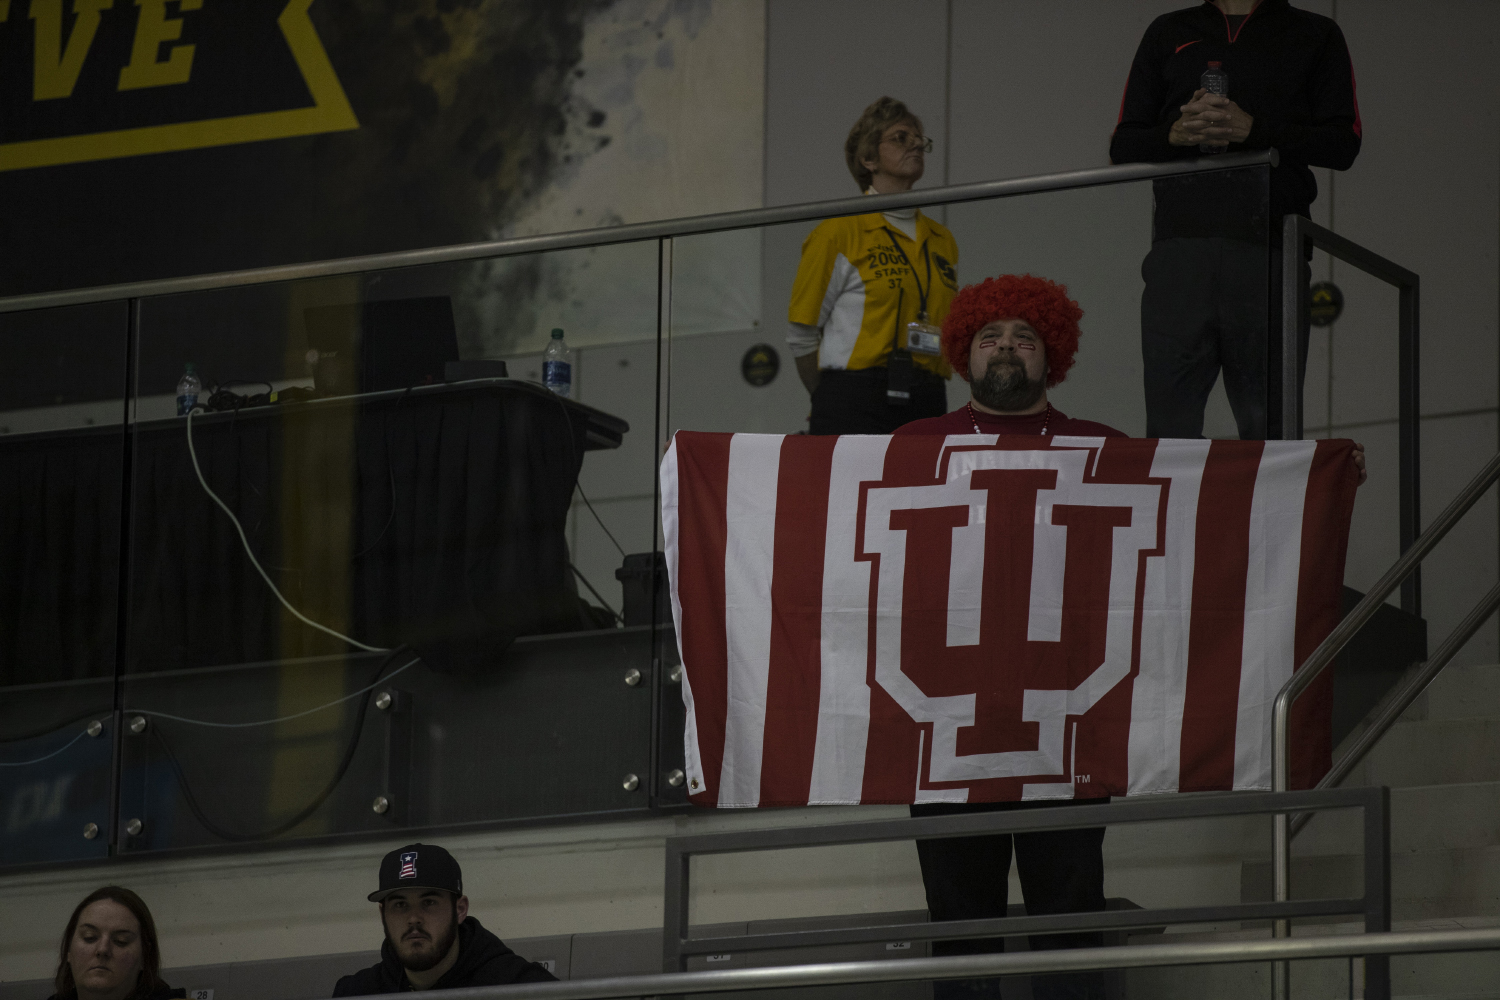 An+Indiana+fan+holds+the+university%27s+flag+during+the+second+day+of+the+2019+Big+Ten+Men%27s+Swimming+and+Diving+Championships+at+the+CRWC+on+Thursday%2C+February+28%2C+2019.+